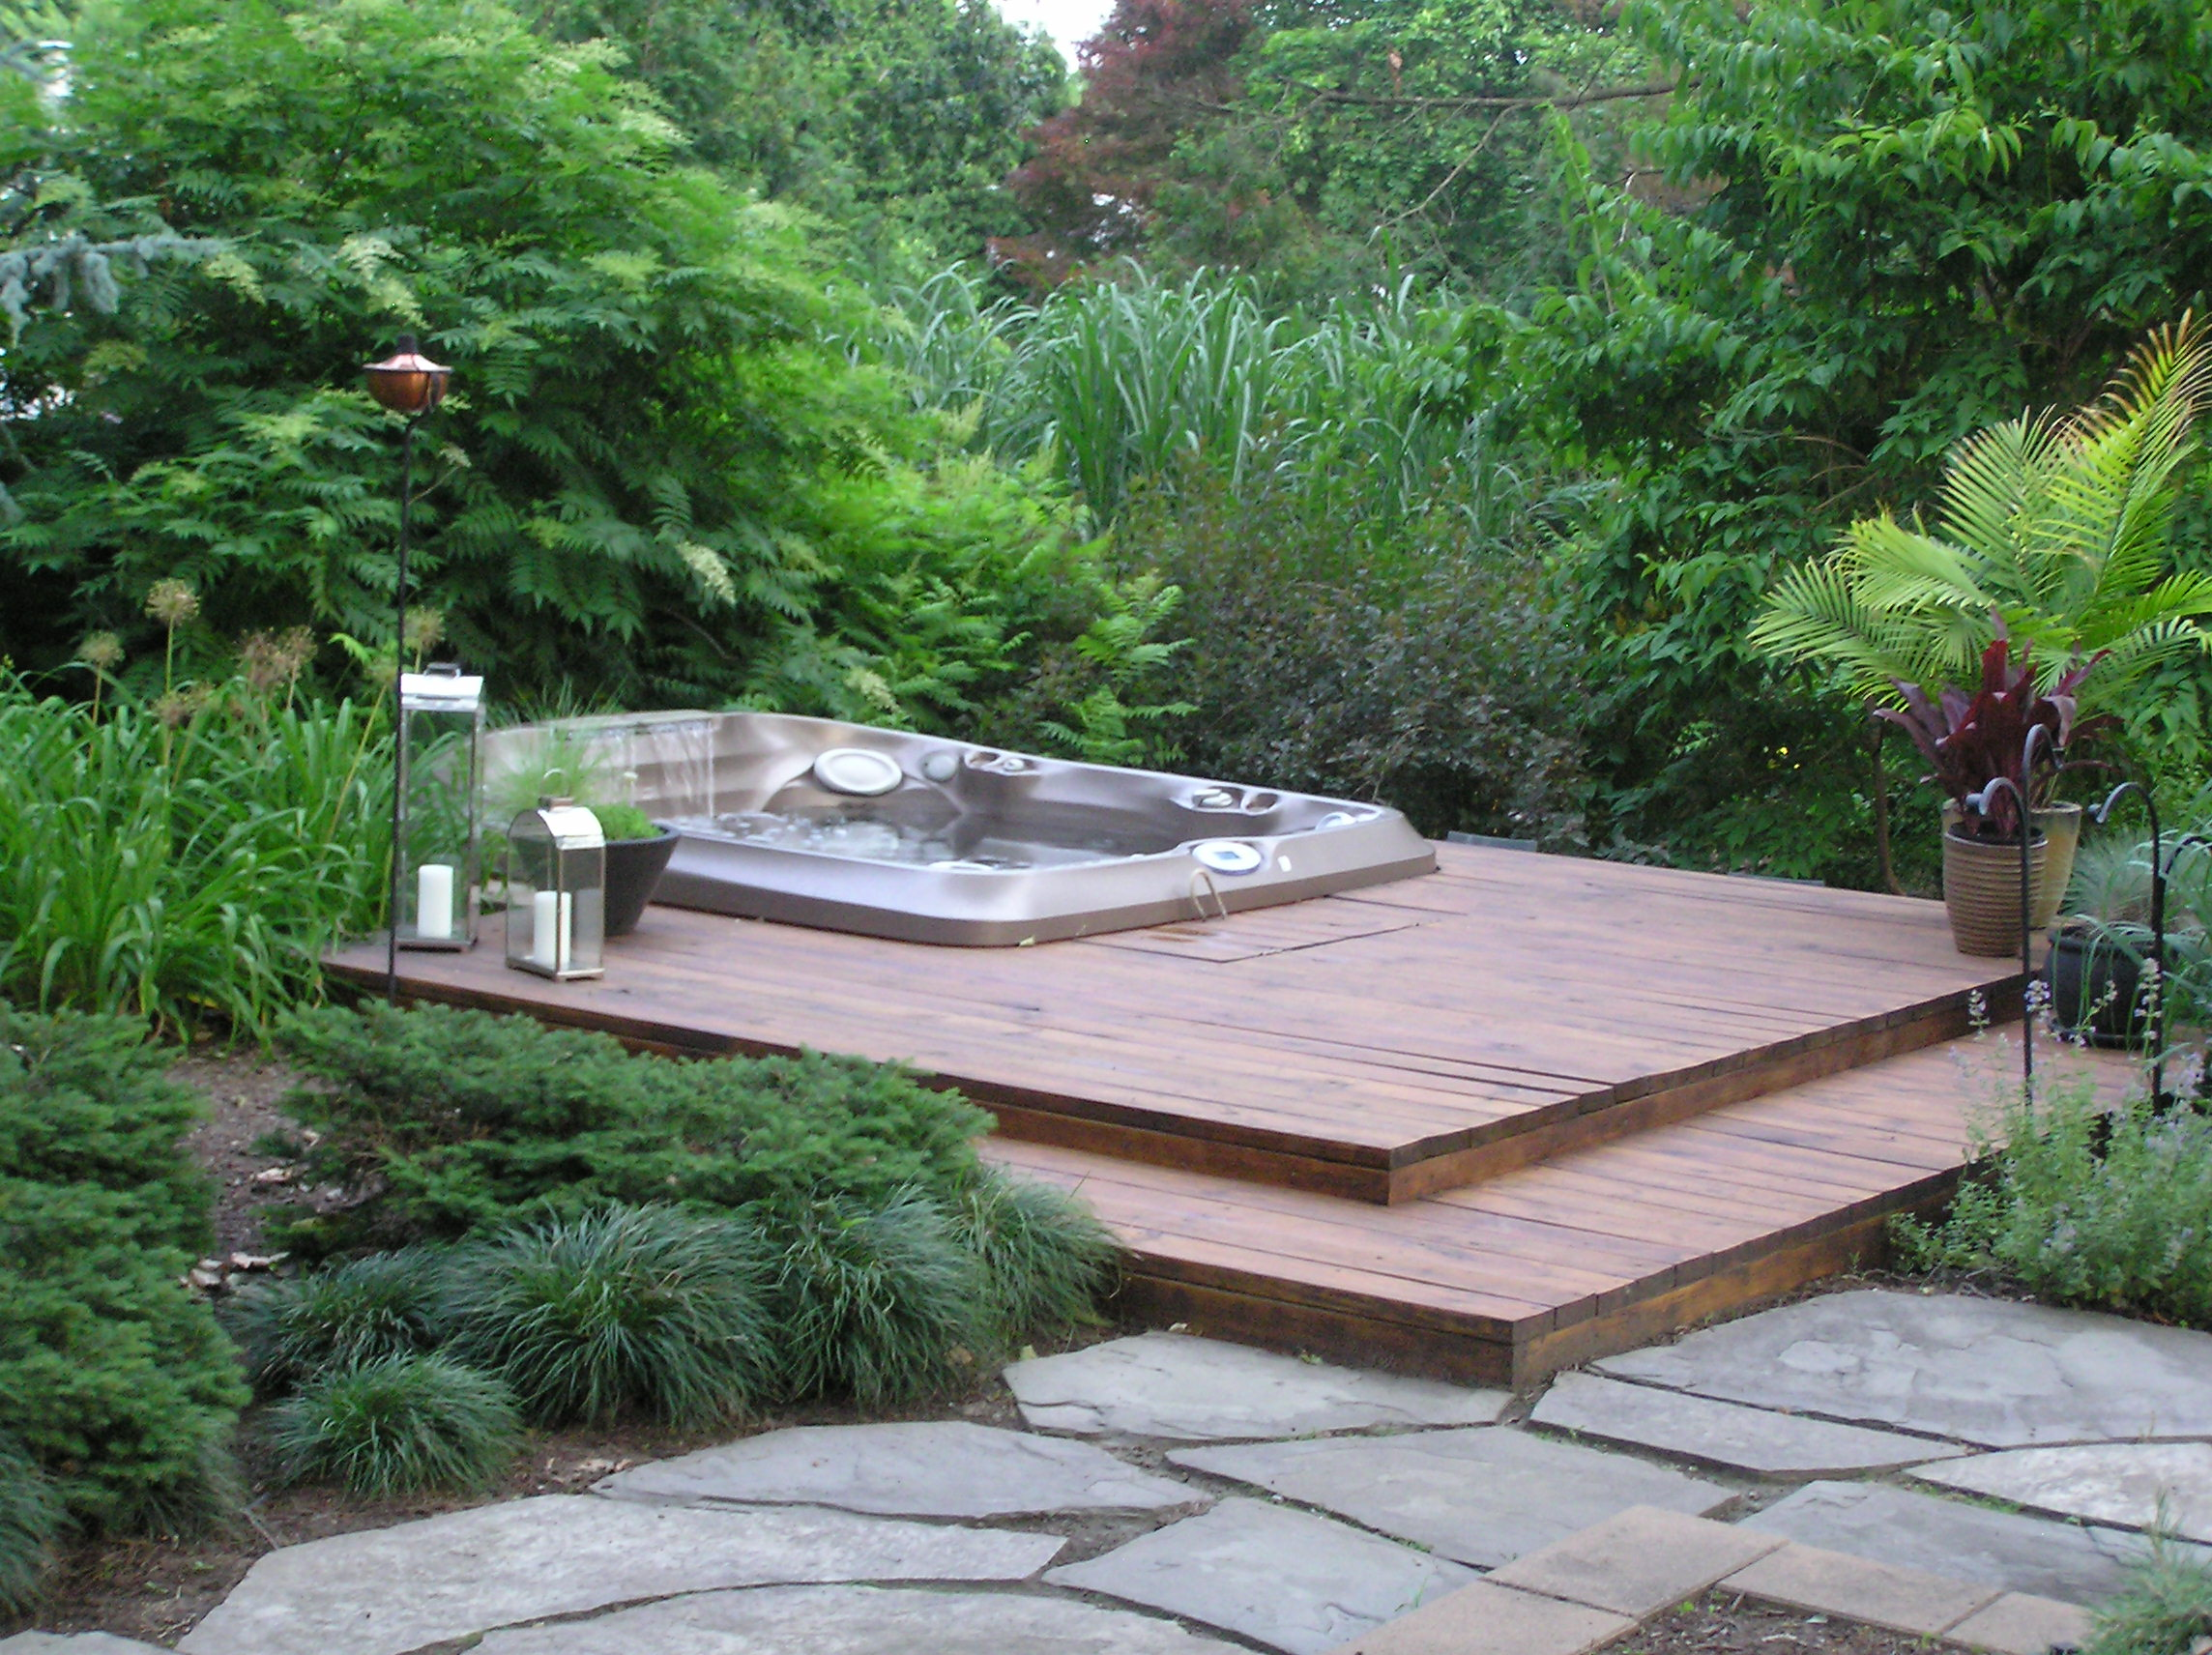 17 best images about hot tubs on pinterest hot tub deck wood decks and hot tub patio - Hot Tub Design Ideas